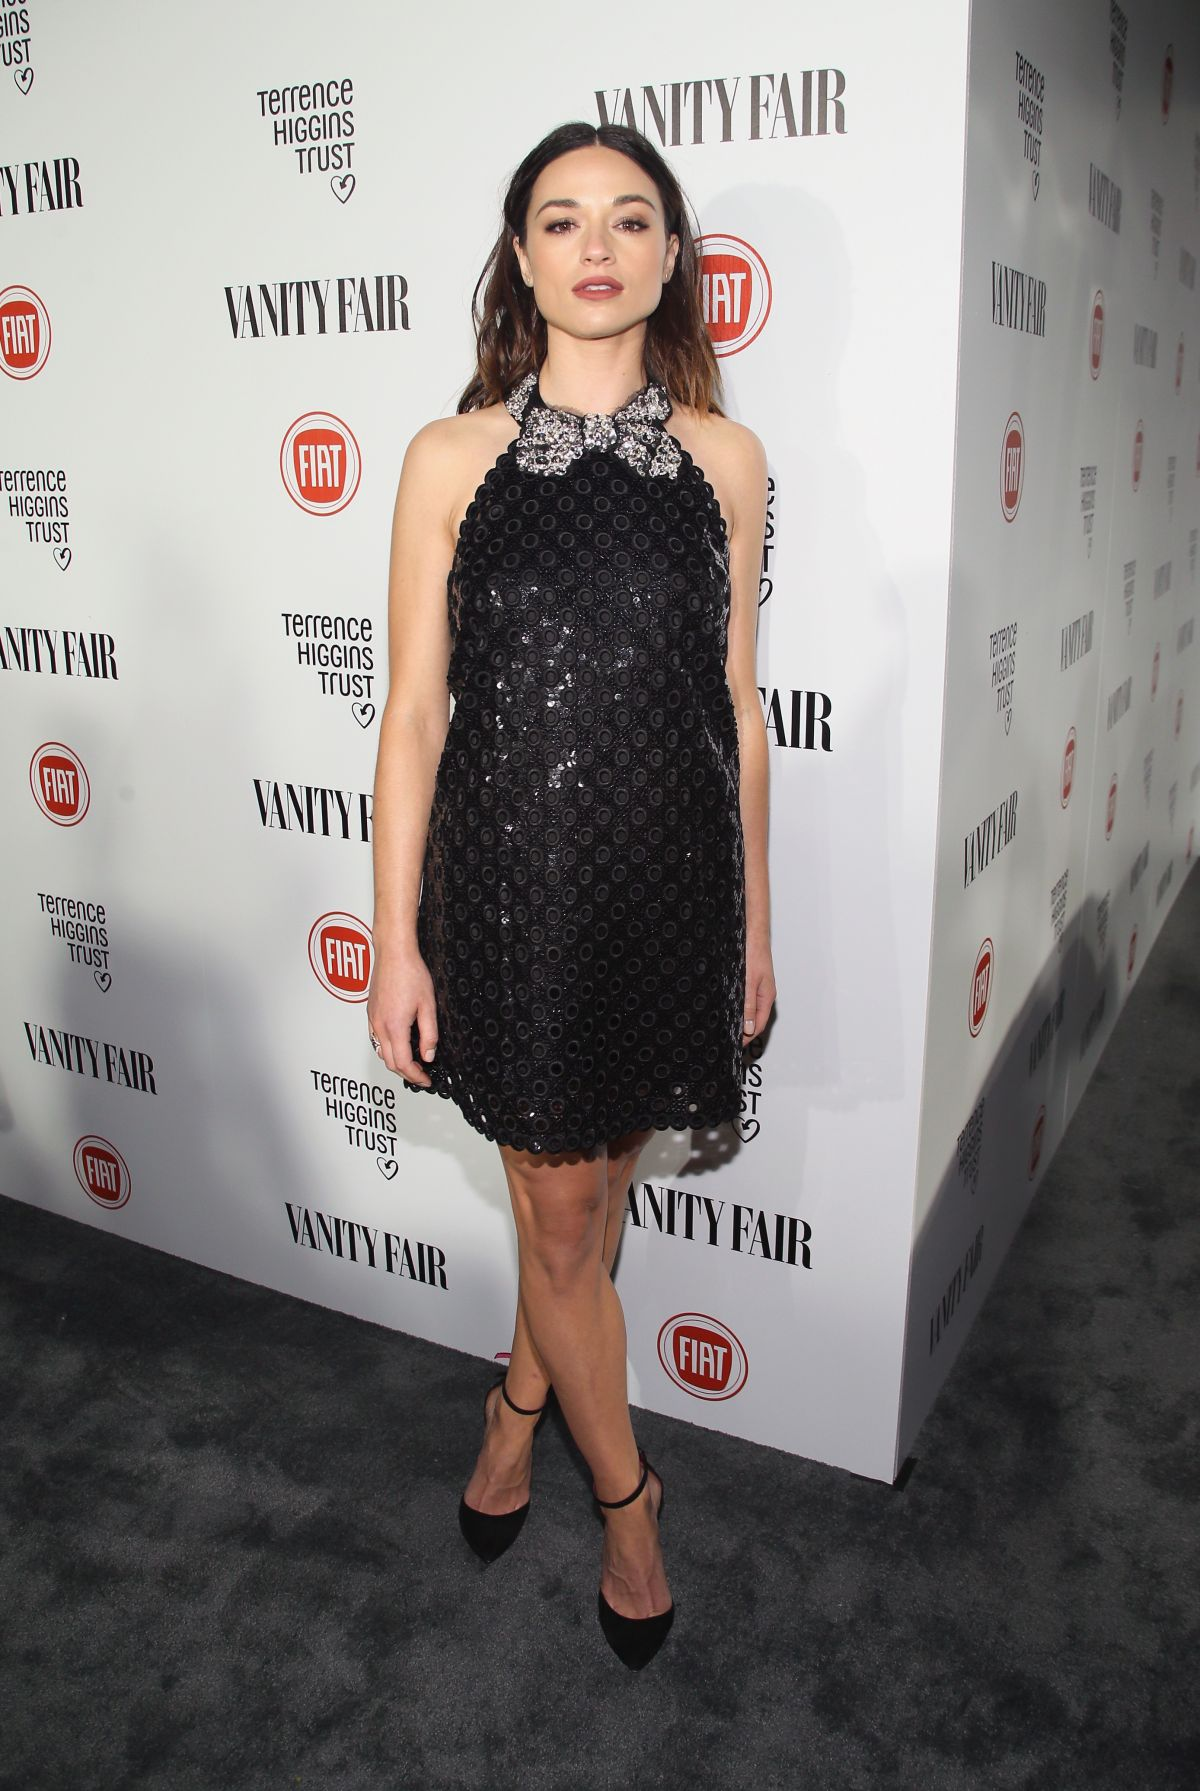 CRYSTAL REED at Vanity Fair and Fiat Celebration of Young Hollywood in Los Angeles